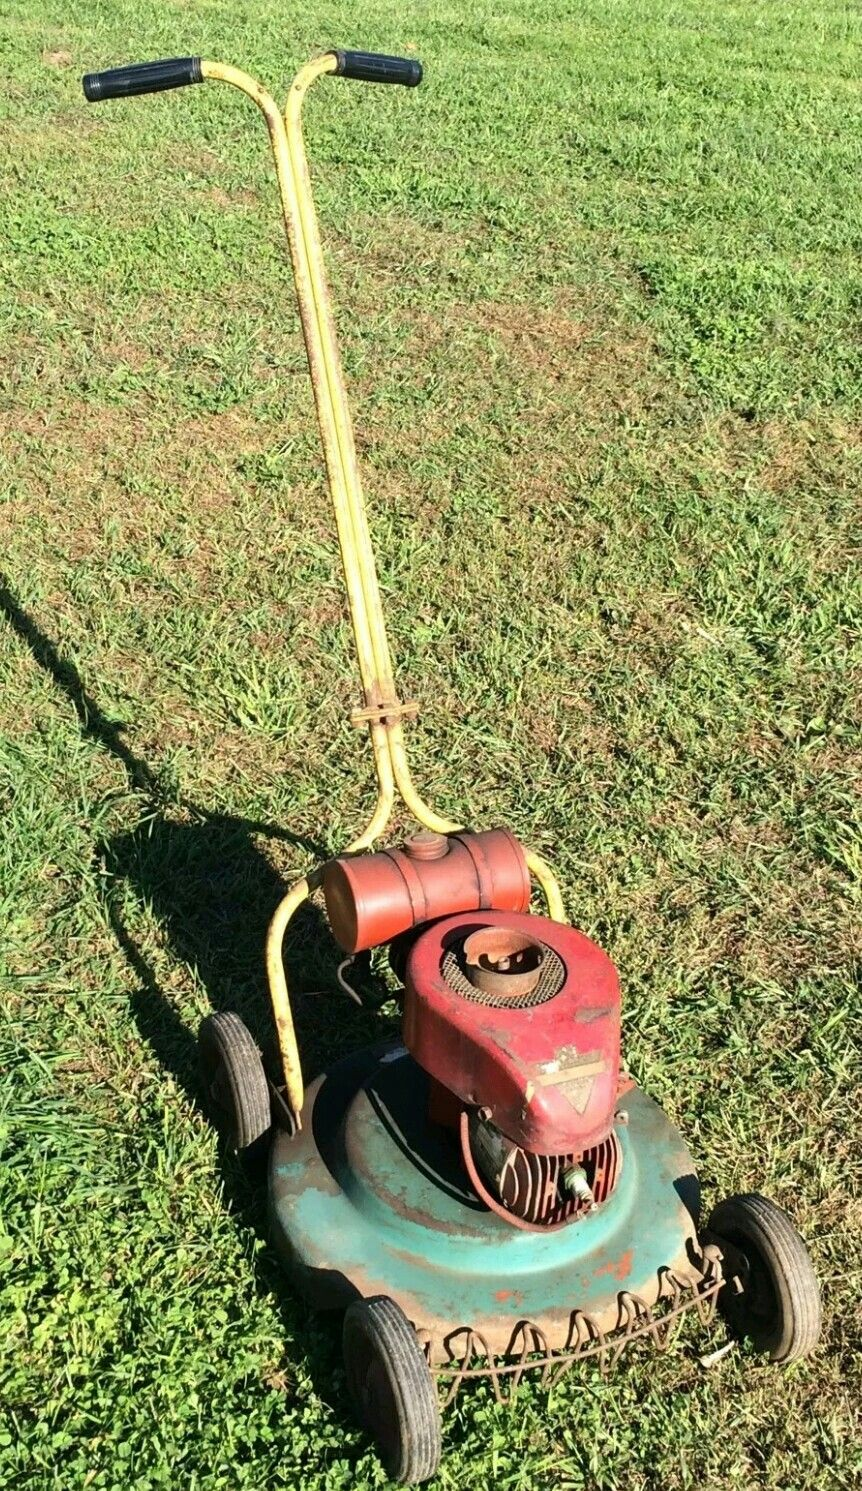 Roberton Rotary Lawn Mower Lawn Equipment Old Tractors